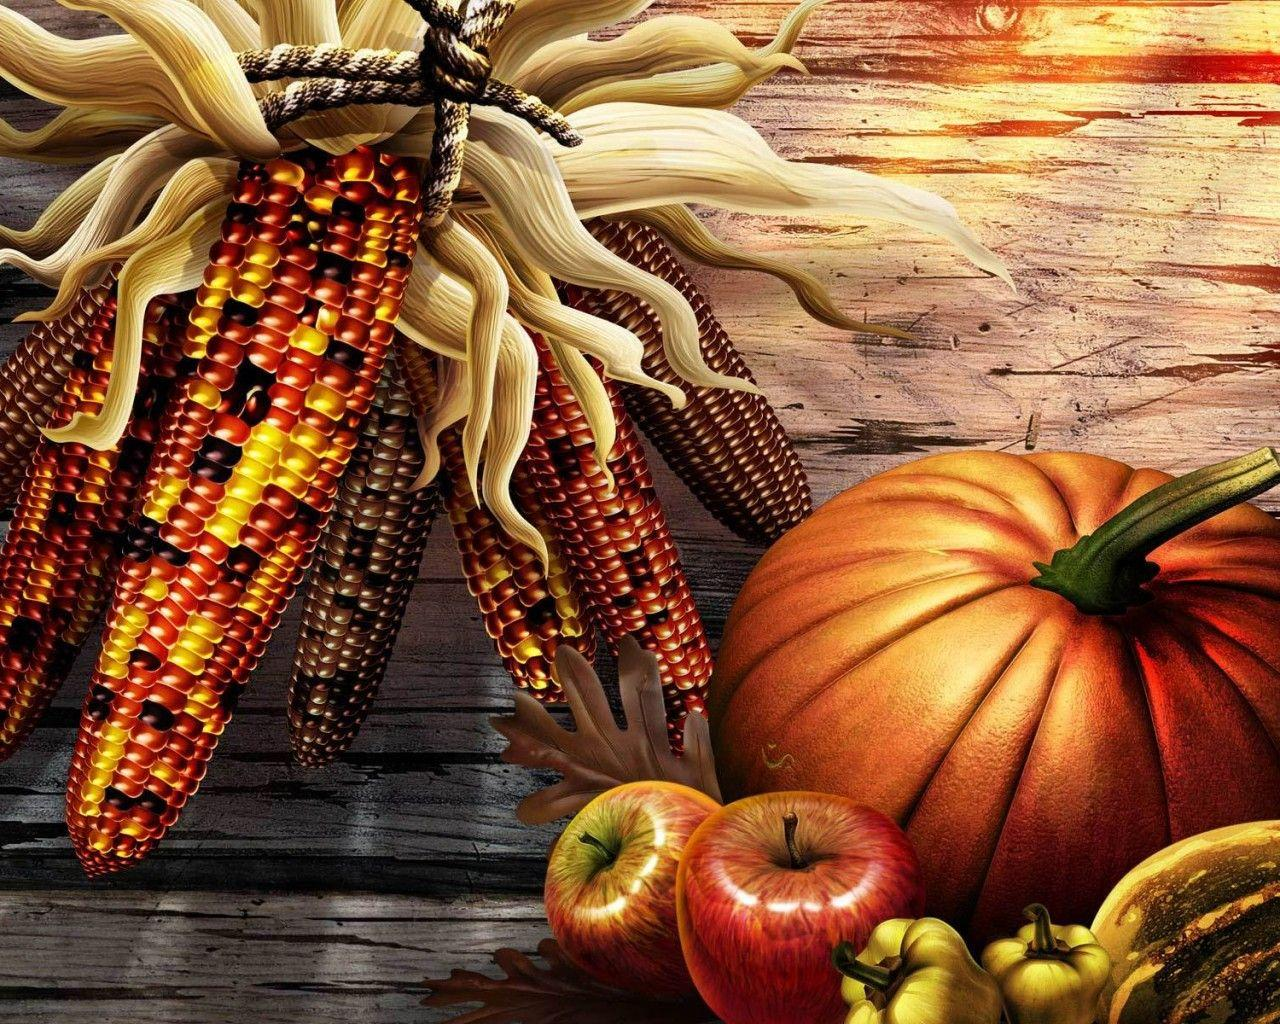 Thanksgiving Holiday Wallpaper 1920x1200 3581 : Wallpapers13.com